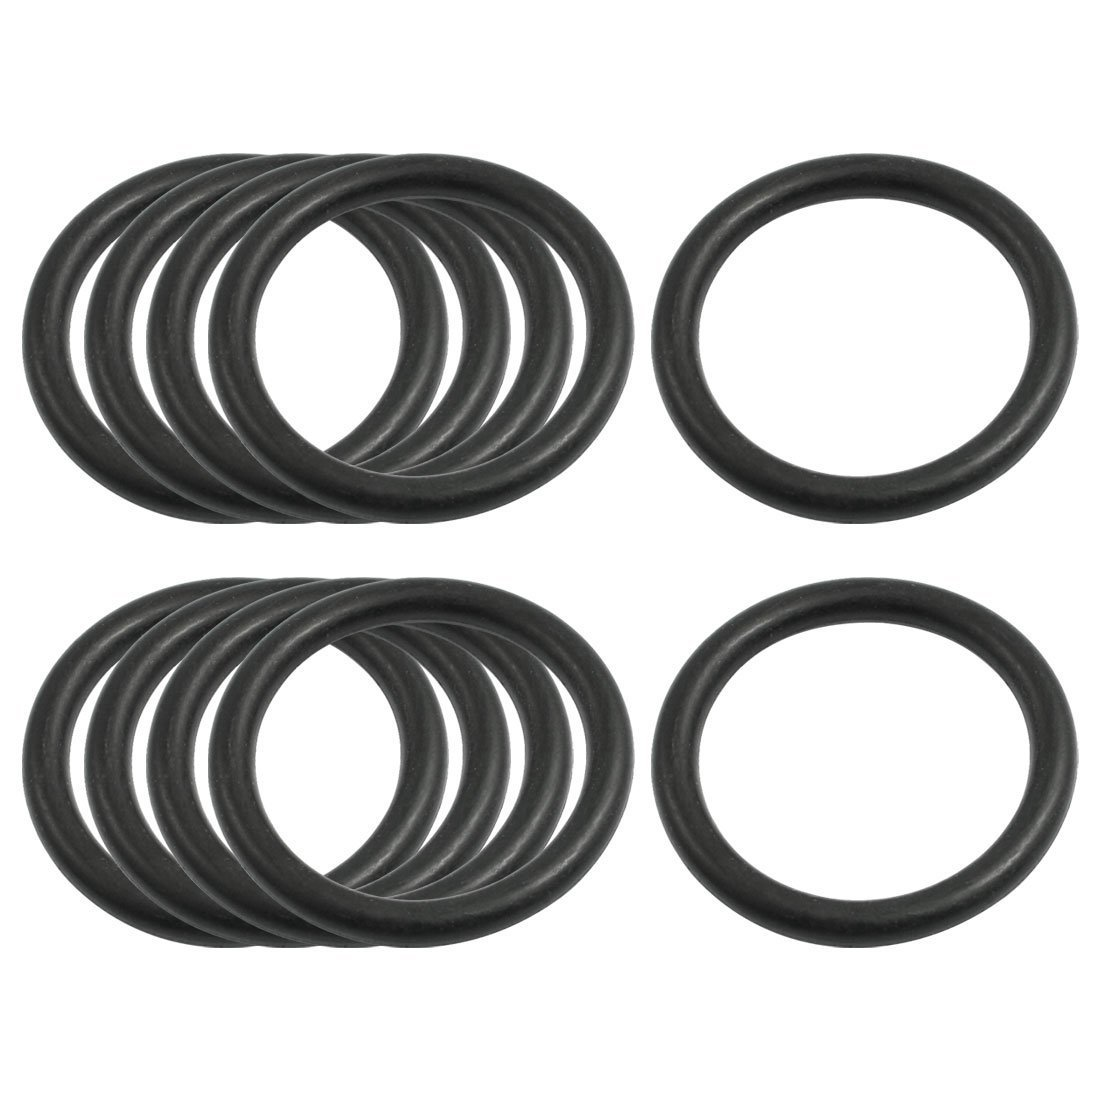 sourcingmap/® 10 Pcs Oil Seal O Rings Black Nitrile Rubber 36mm OD 4mm Thickness